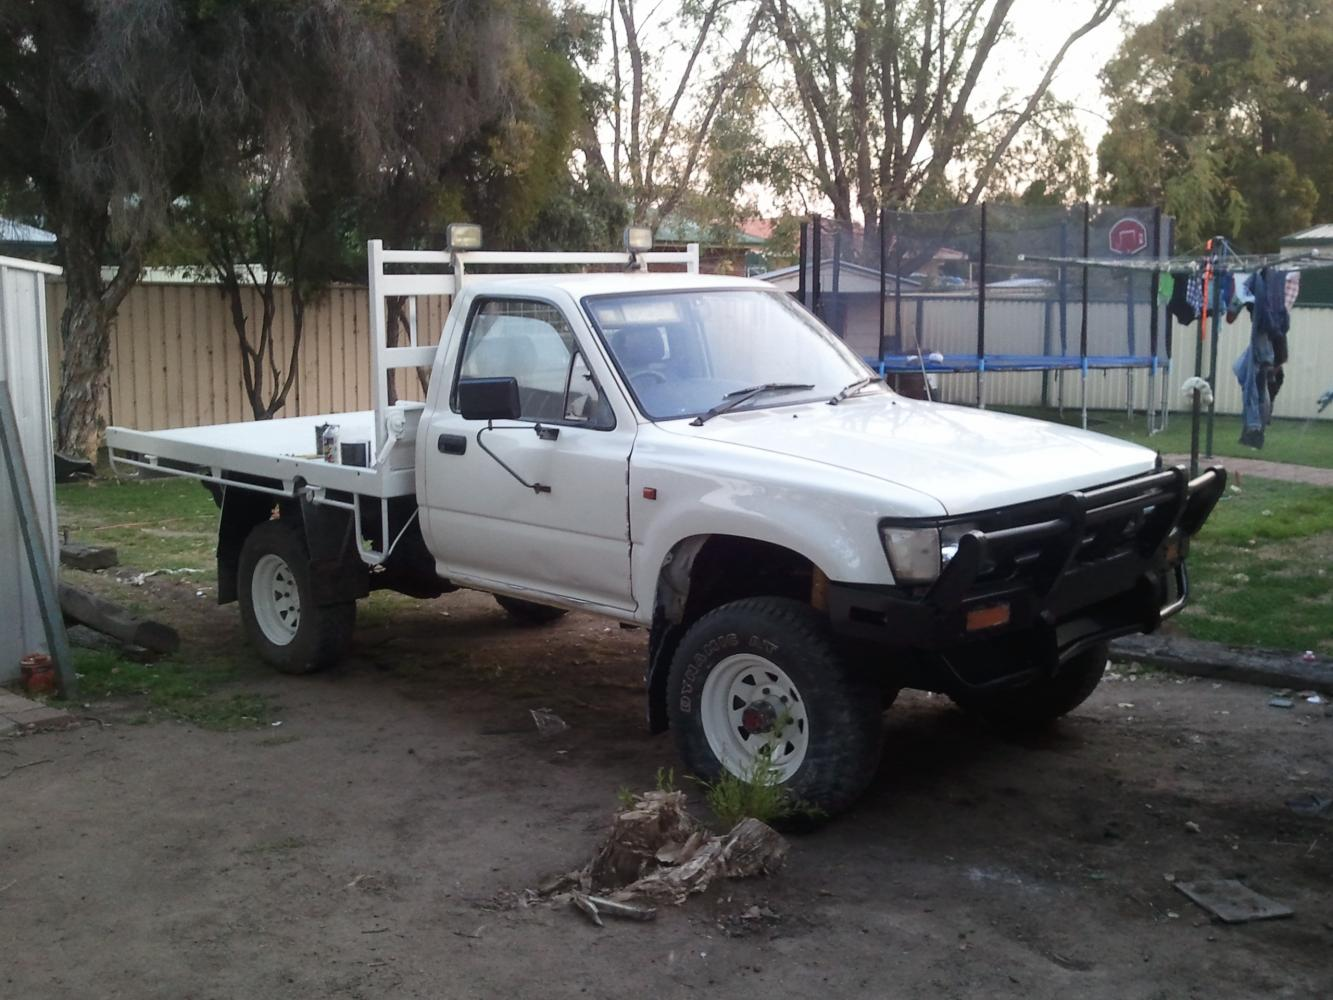 Toyota Hilux 1994 photo - 4